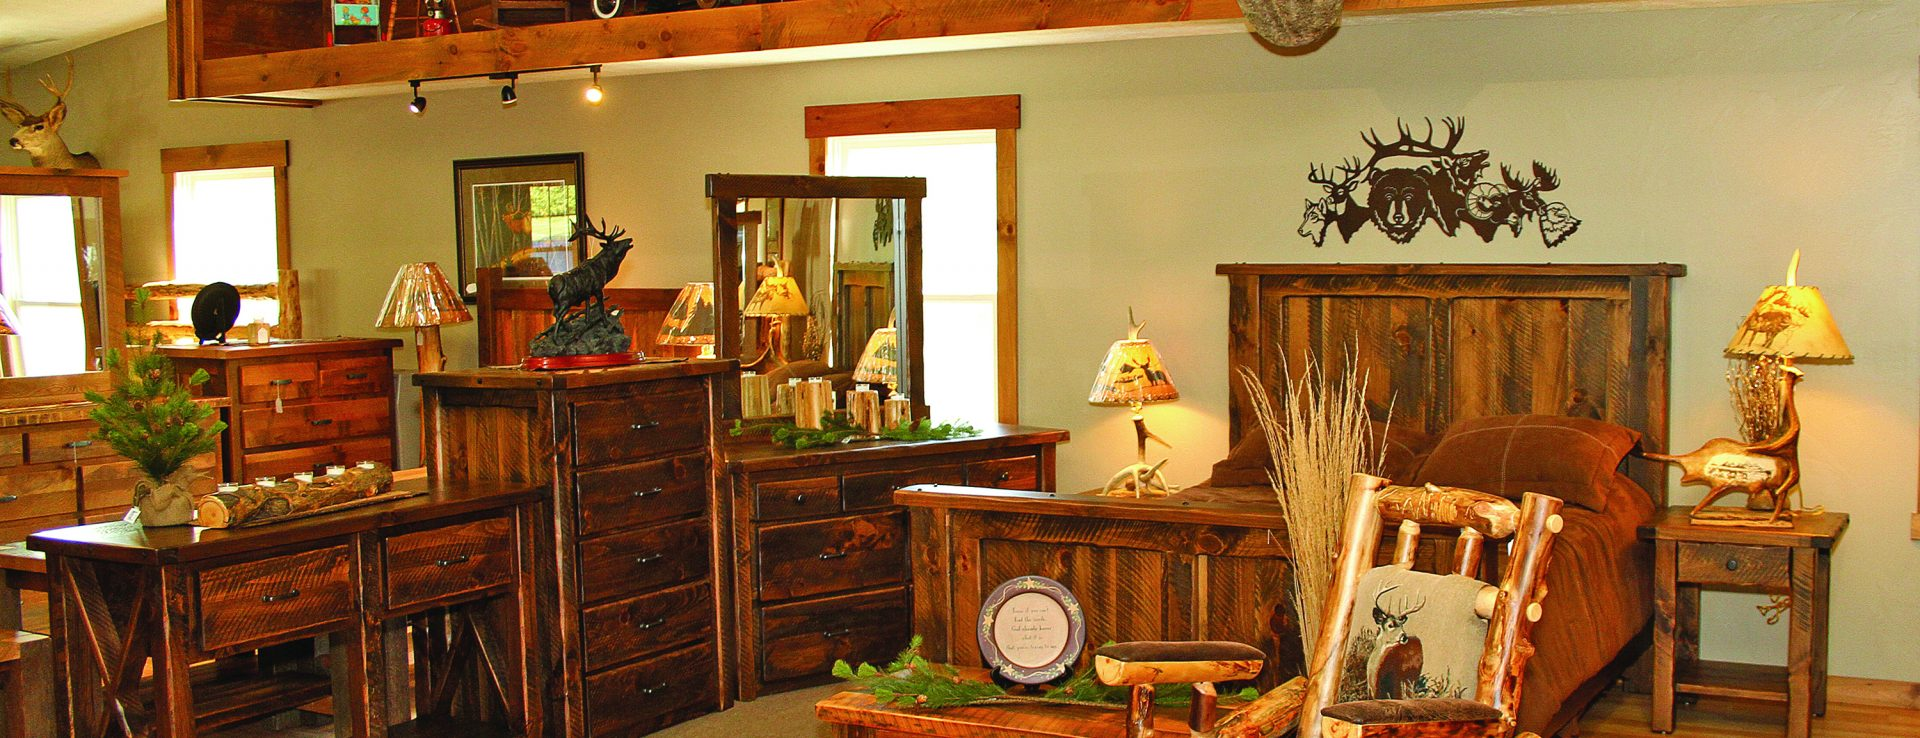 Miller\'s Rustic Furniture | Ohio\'s Amish Country